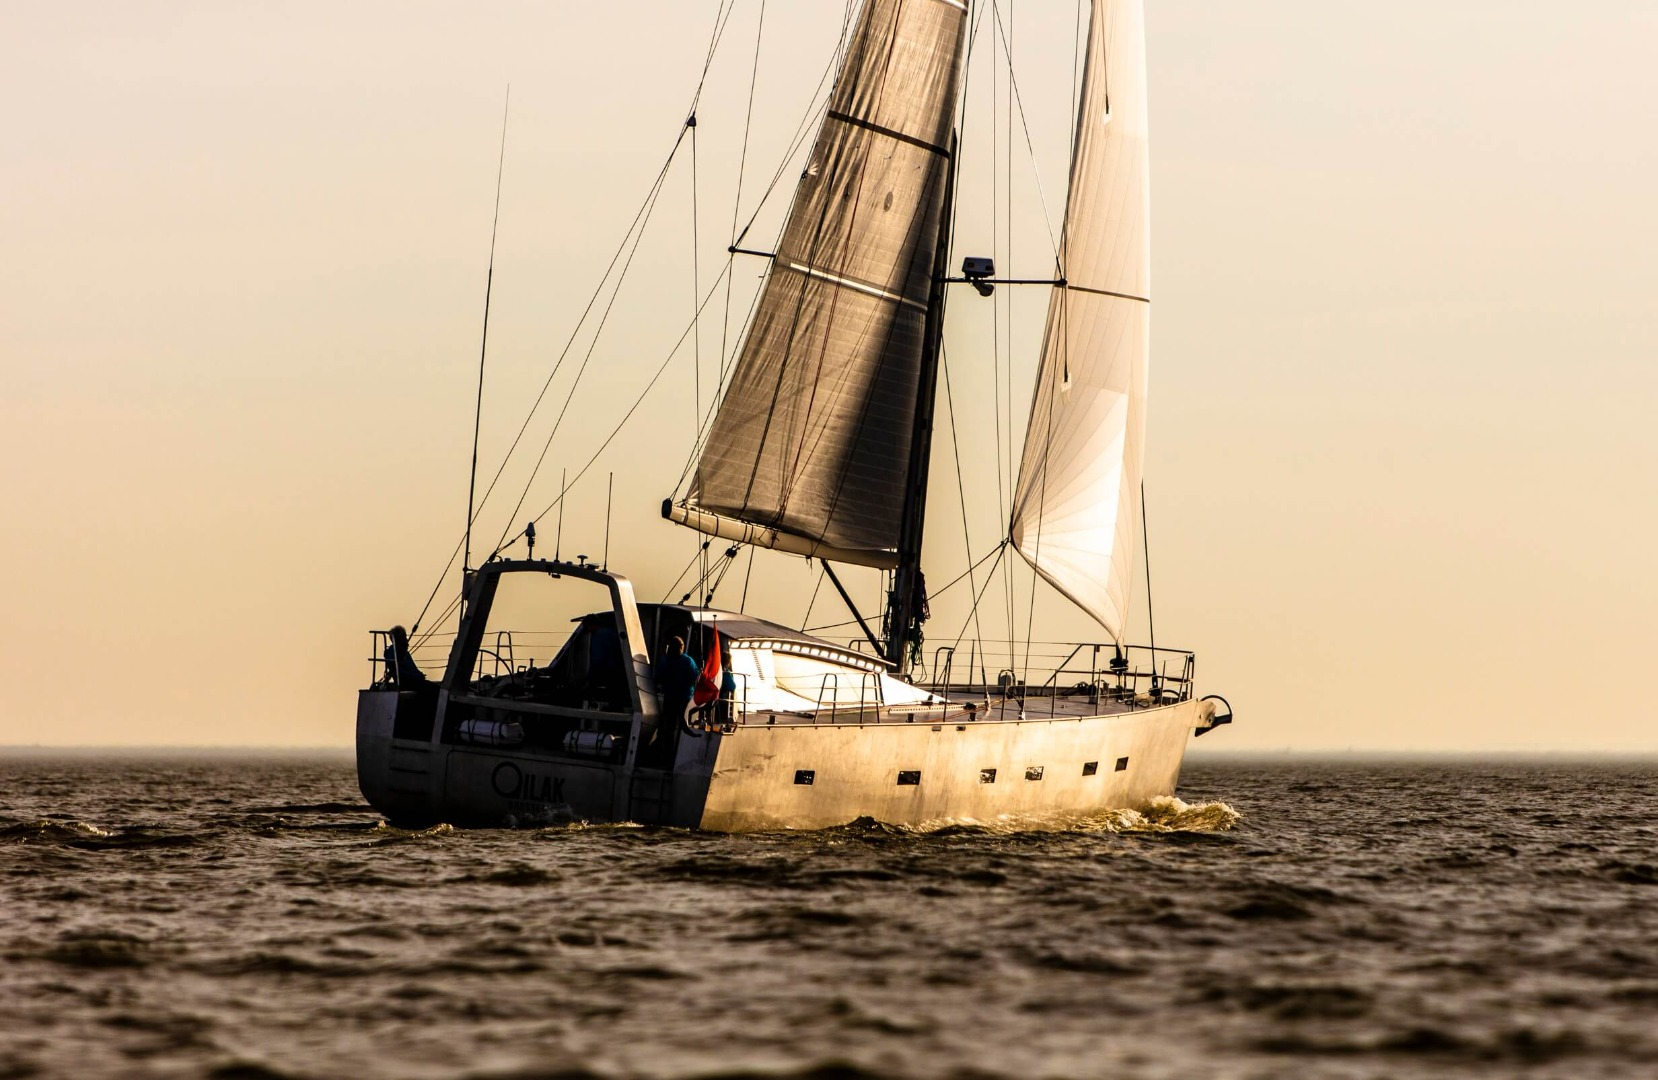 This is OC Design's high latitude aluminium polar sailing yacht Qilak, designed as a blue water explorer yacht designed for expeditions, cruising in the Arctic and Antarctic in a single season